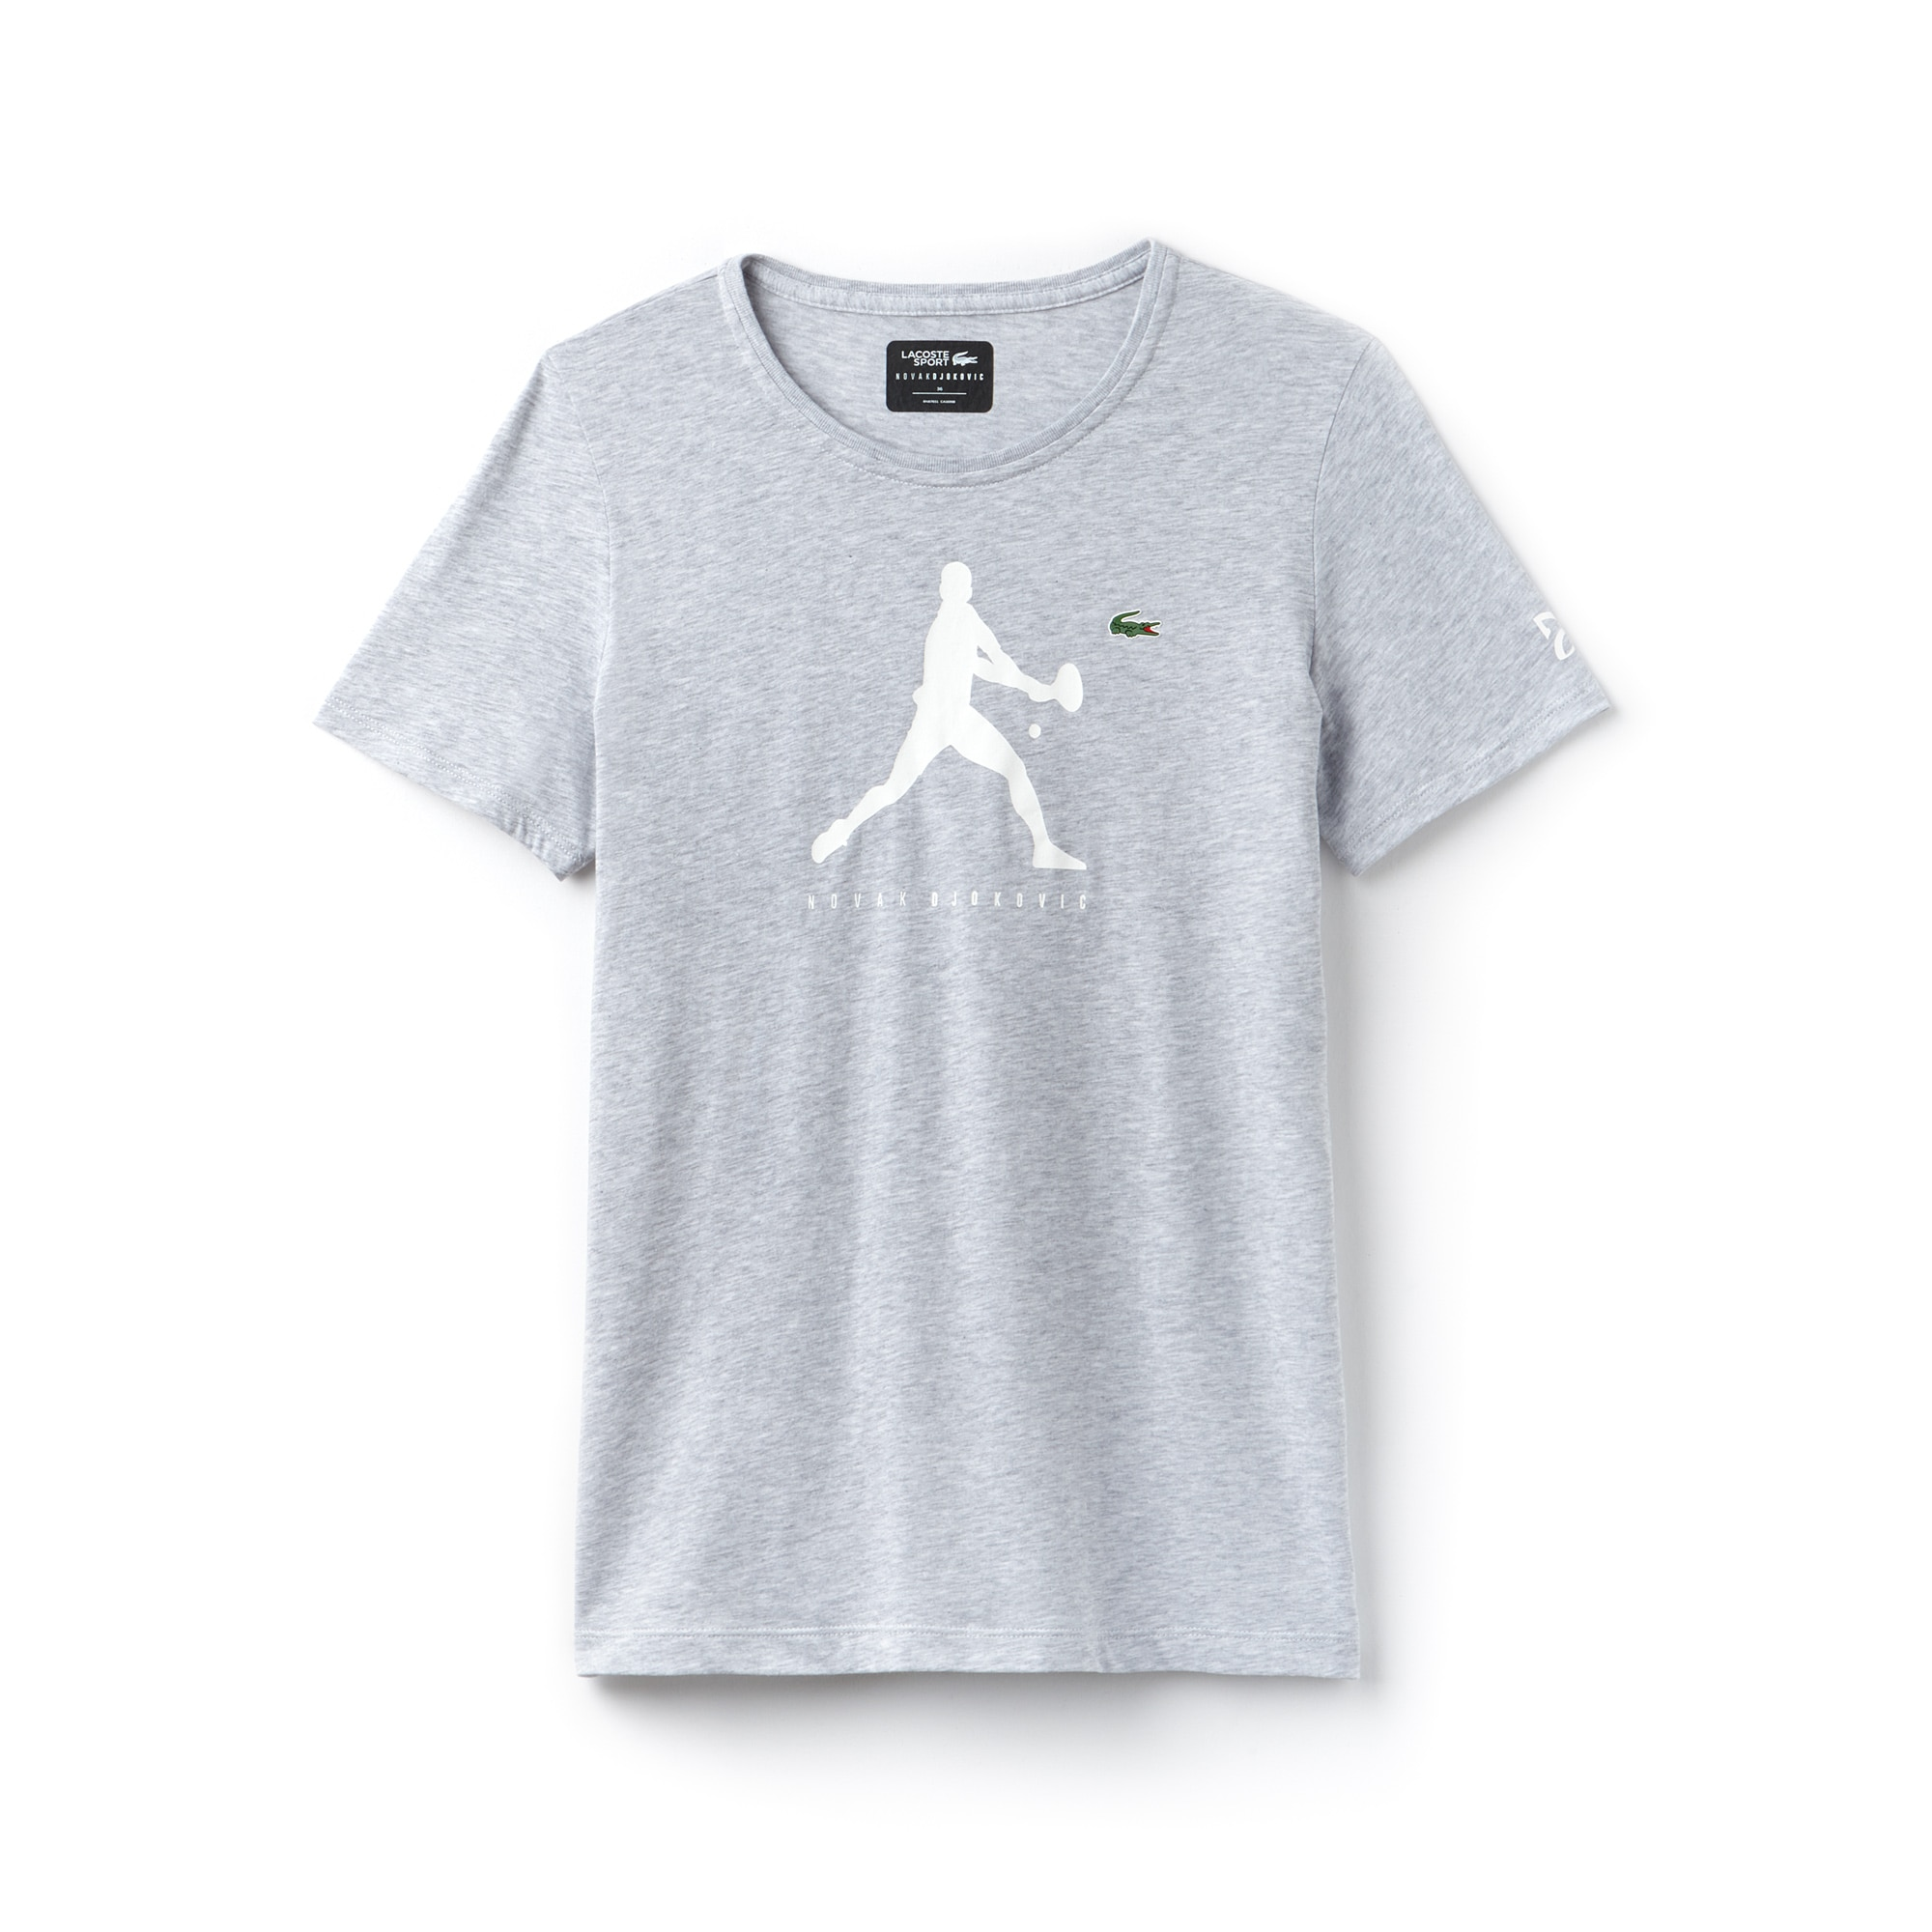 Lacoste SPORT NOVAK DJOKOVIC SUPPORT WITH STYLE COLLECTION-T-shirt dames ronde hals jersey met print